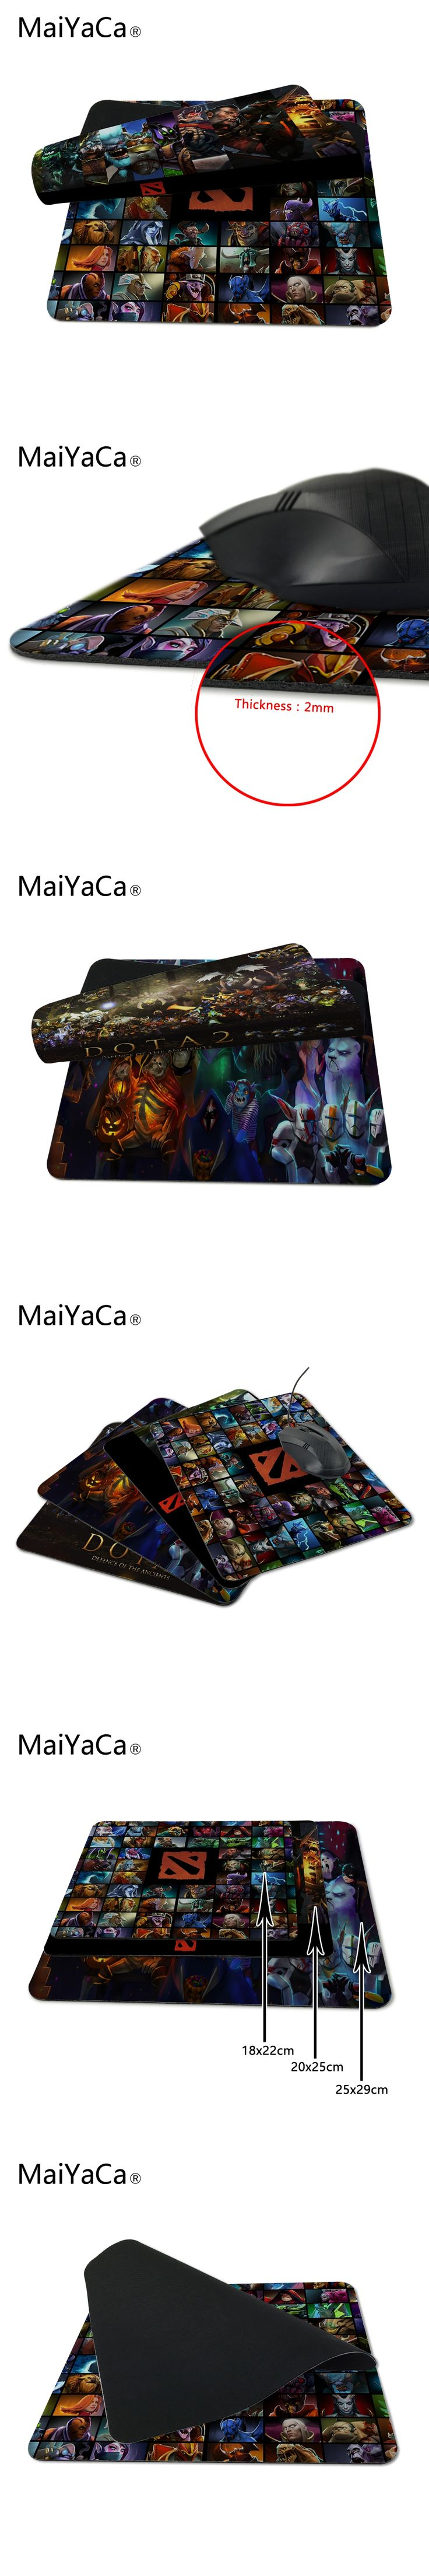 Hot Selling ame aming Dota 2 Main Charactors Art Design Durable PC Anti-slip Mouse Mat for Optal/Trackball Mouse